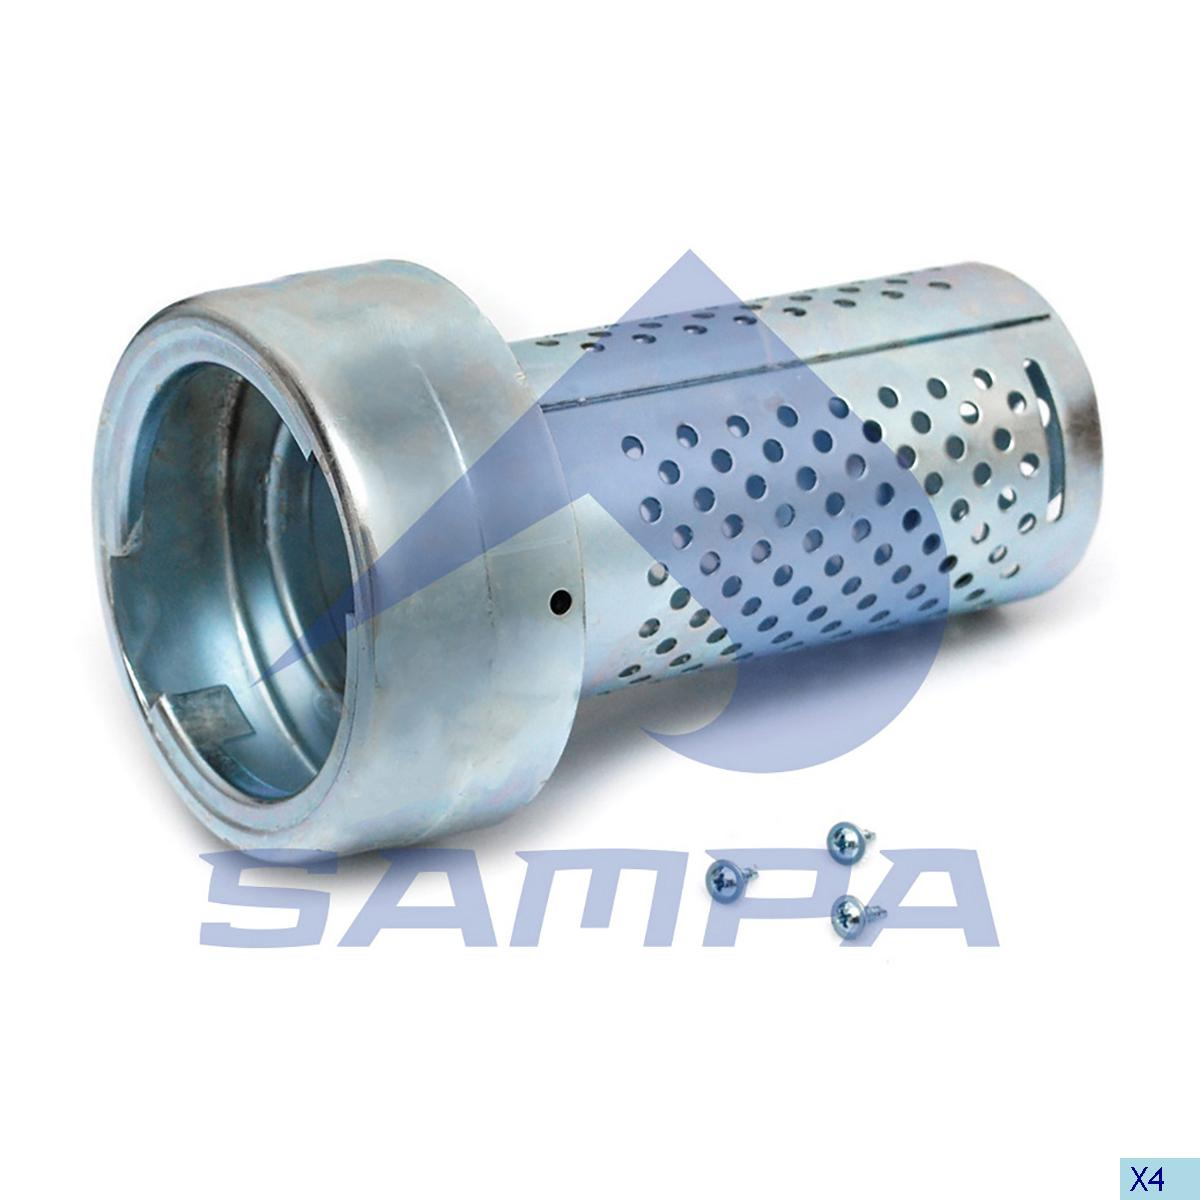 Strainer, Fuel Tank, Daf, Engine